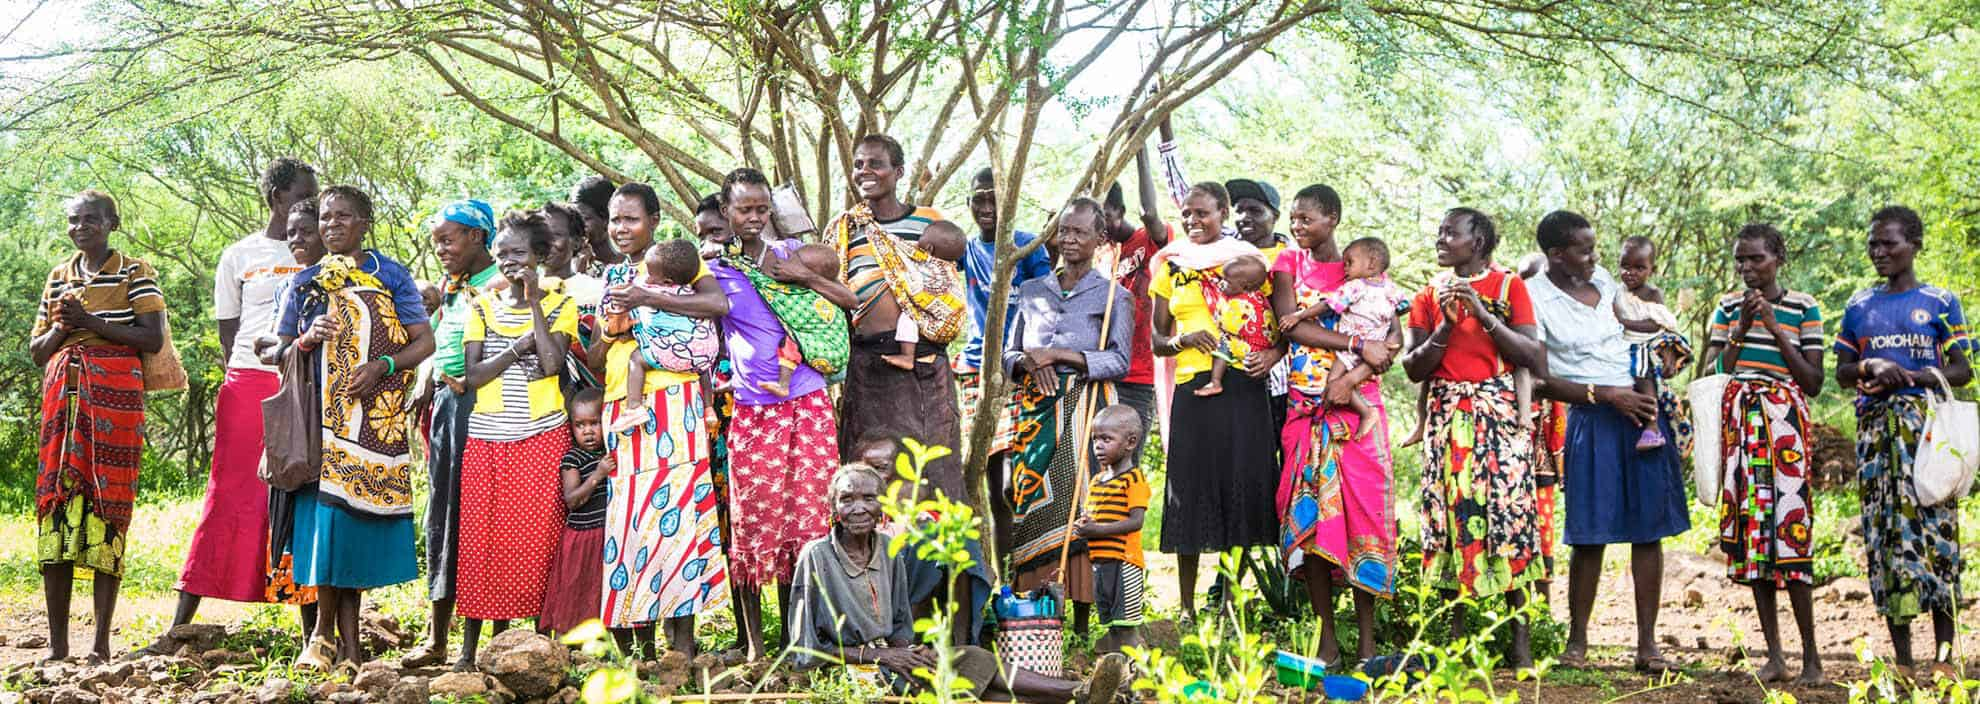 Community in East Africa